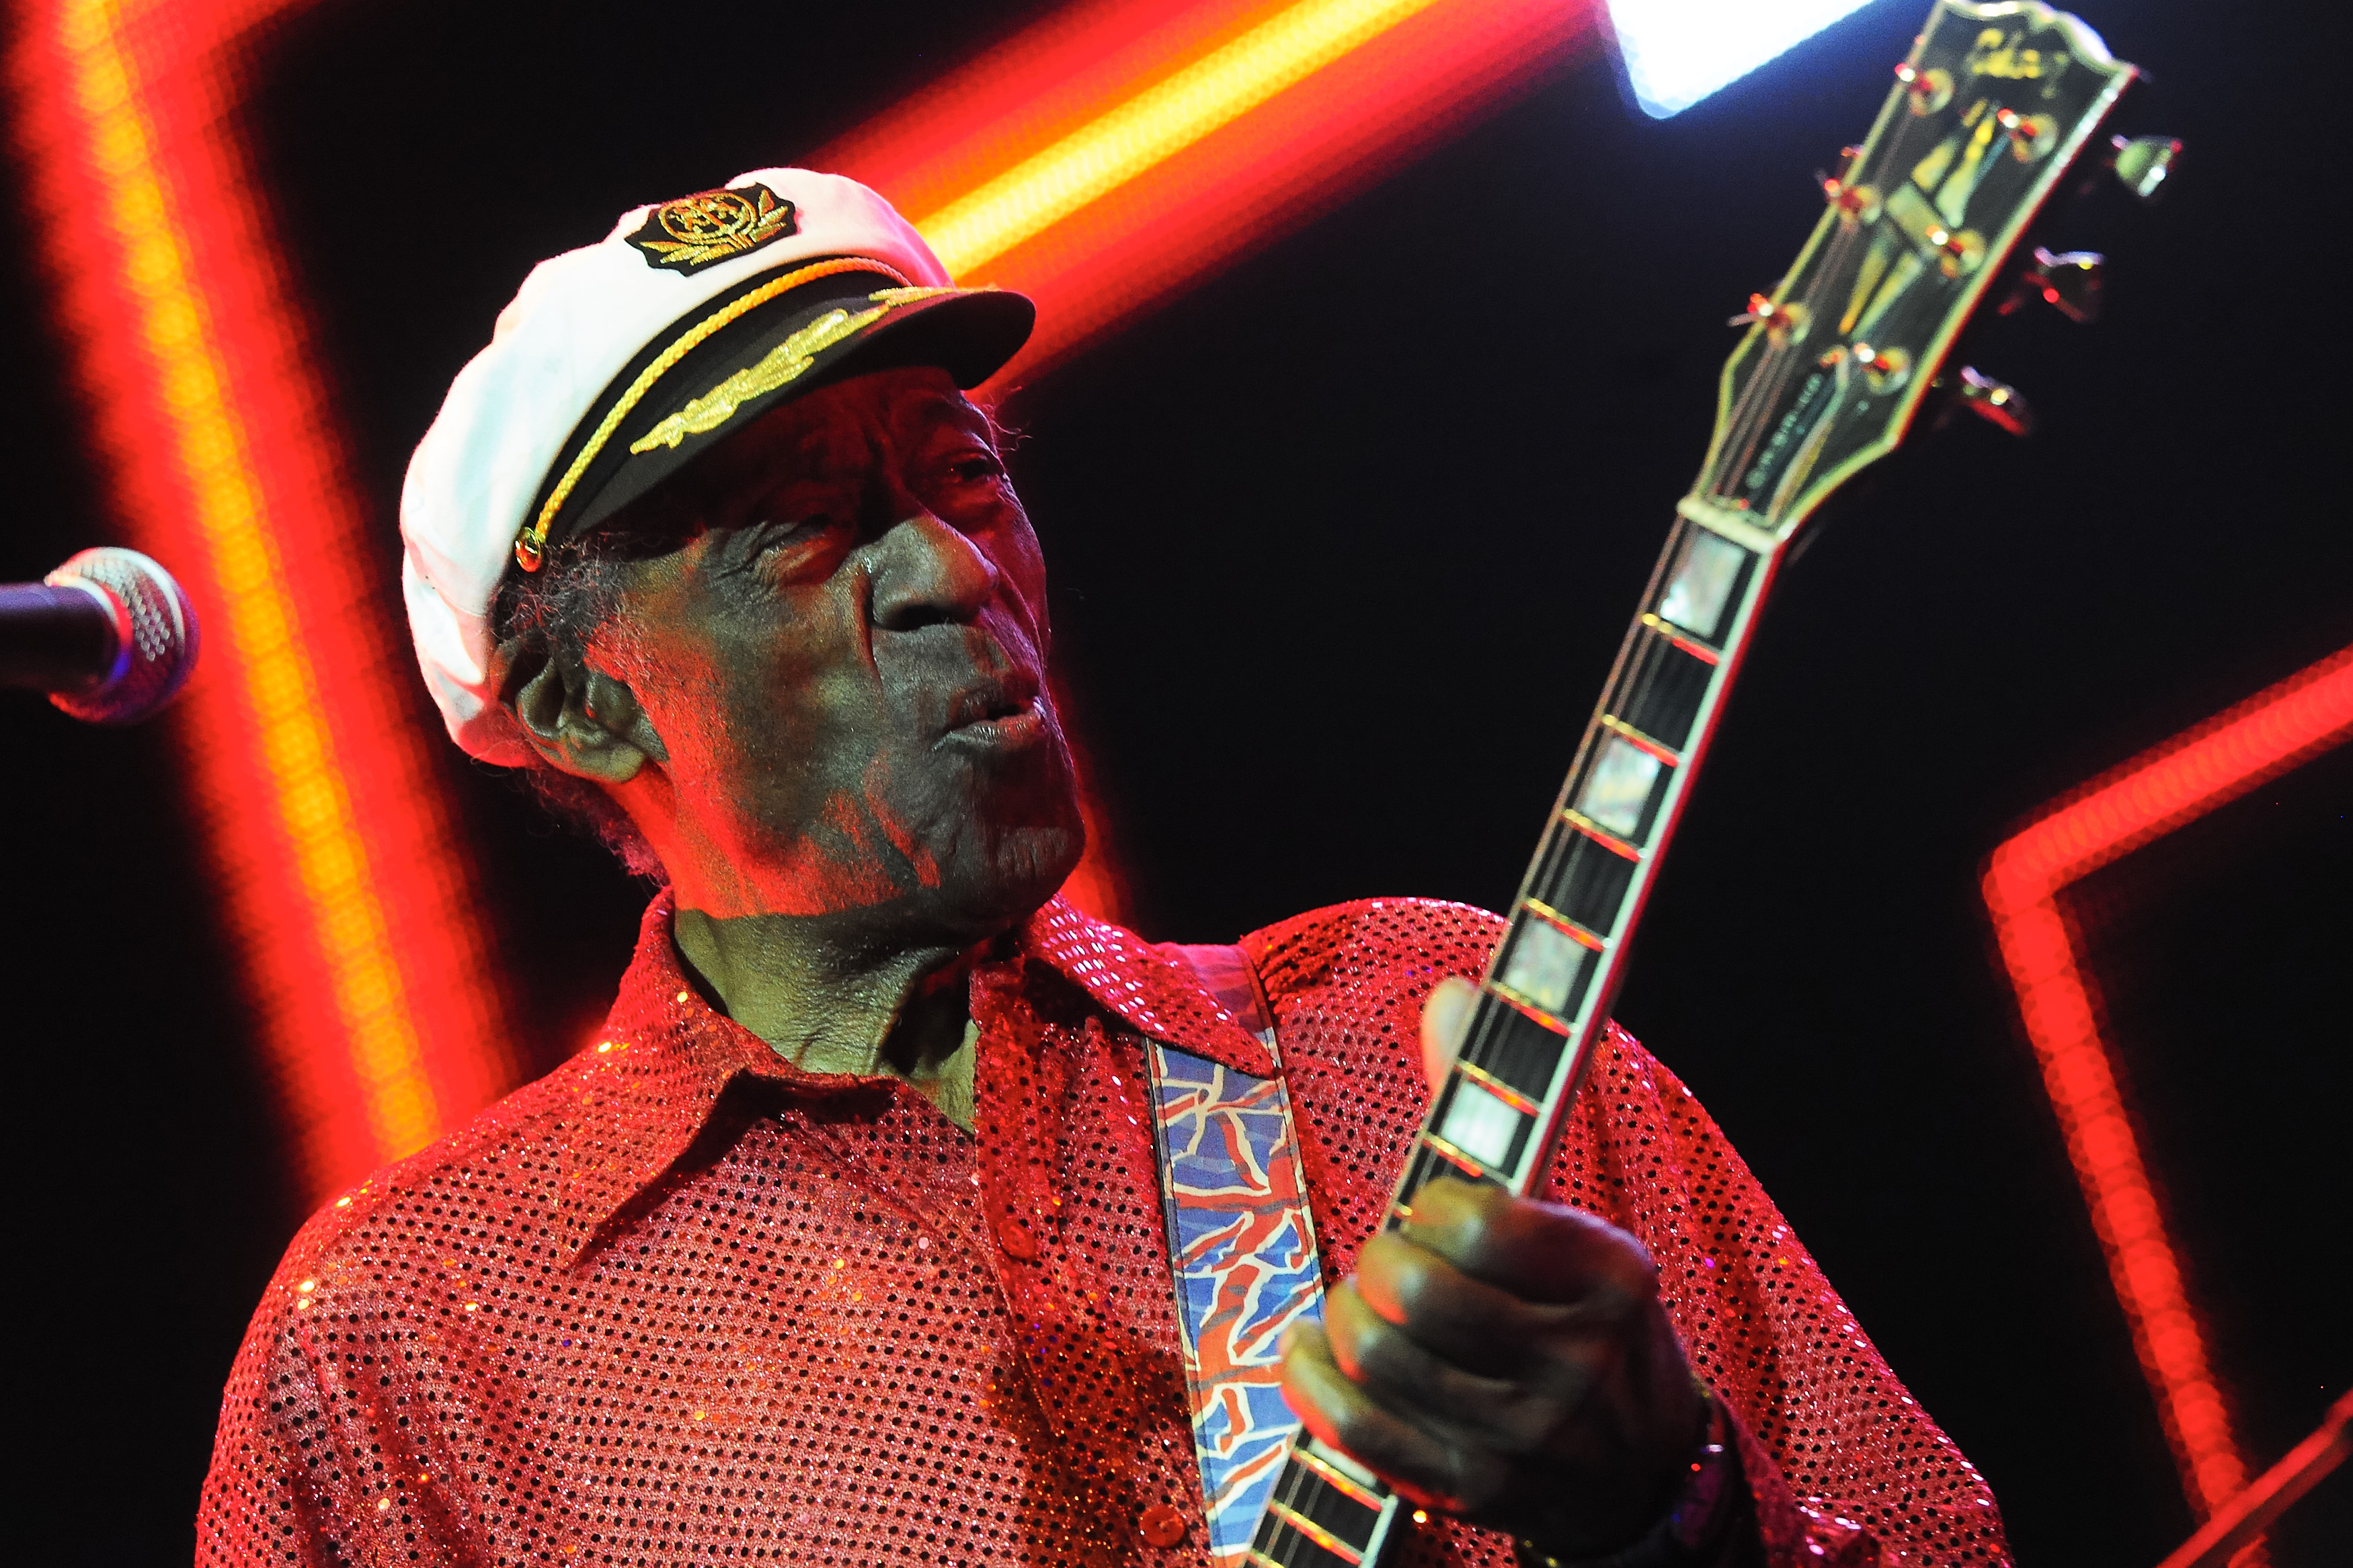 Chuck Berry performs at the Izvestia Hall on October 20, 2013 in Moscow, Russia.